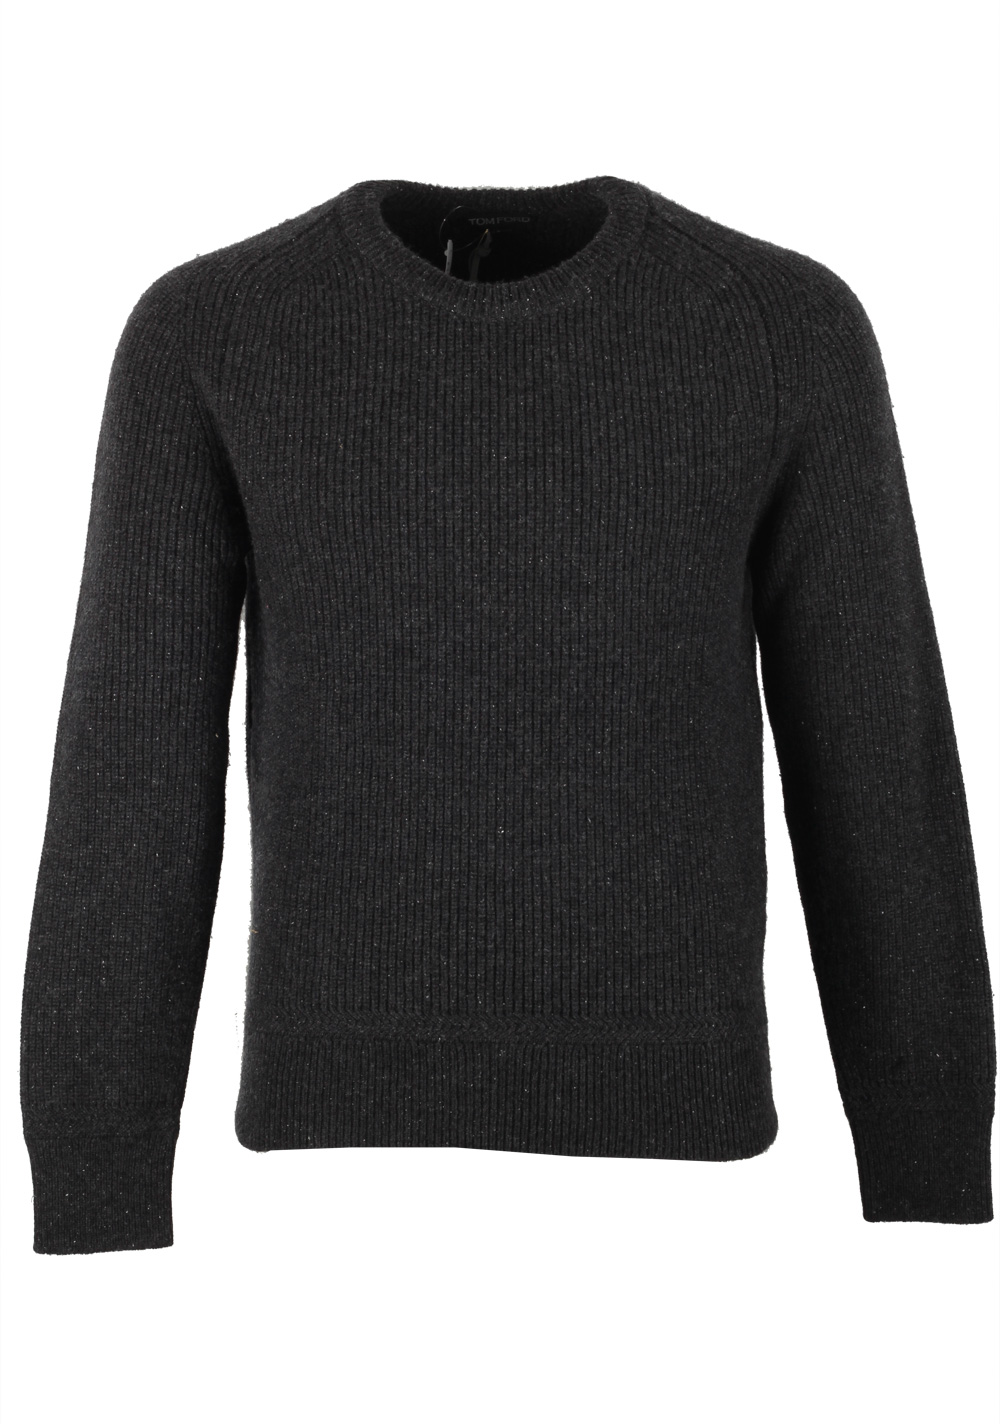 TOM FORD Gray Crew Neck Sweater Size 48 / 38R U.S. In Wool Silk   Costume Limité